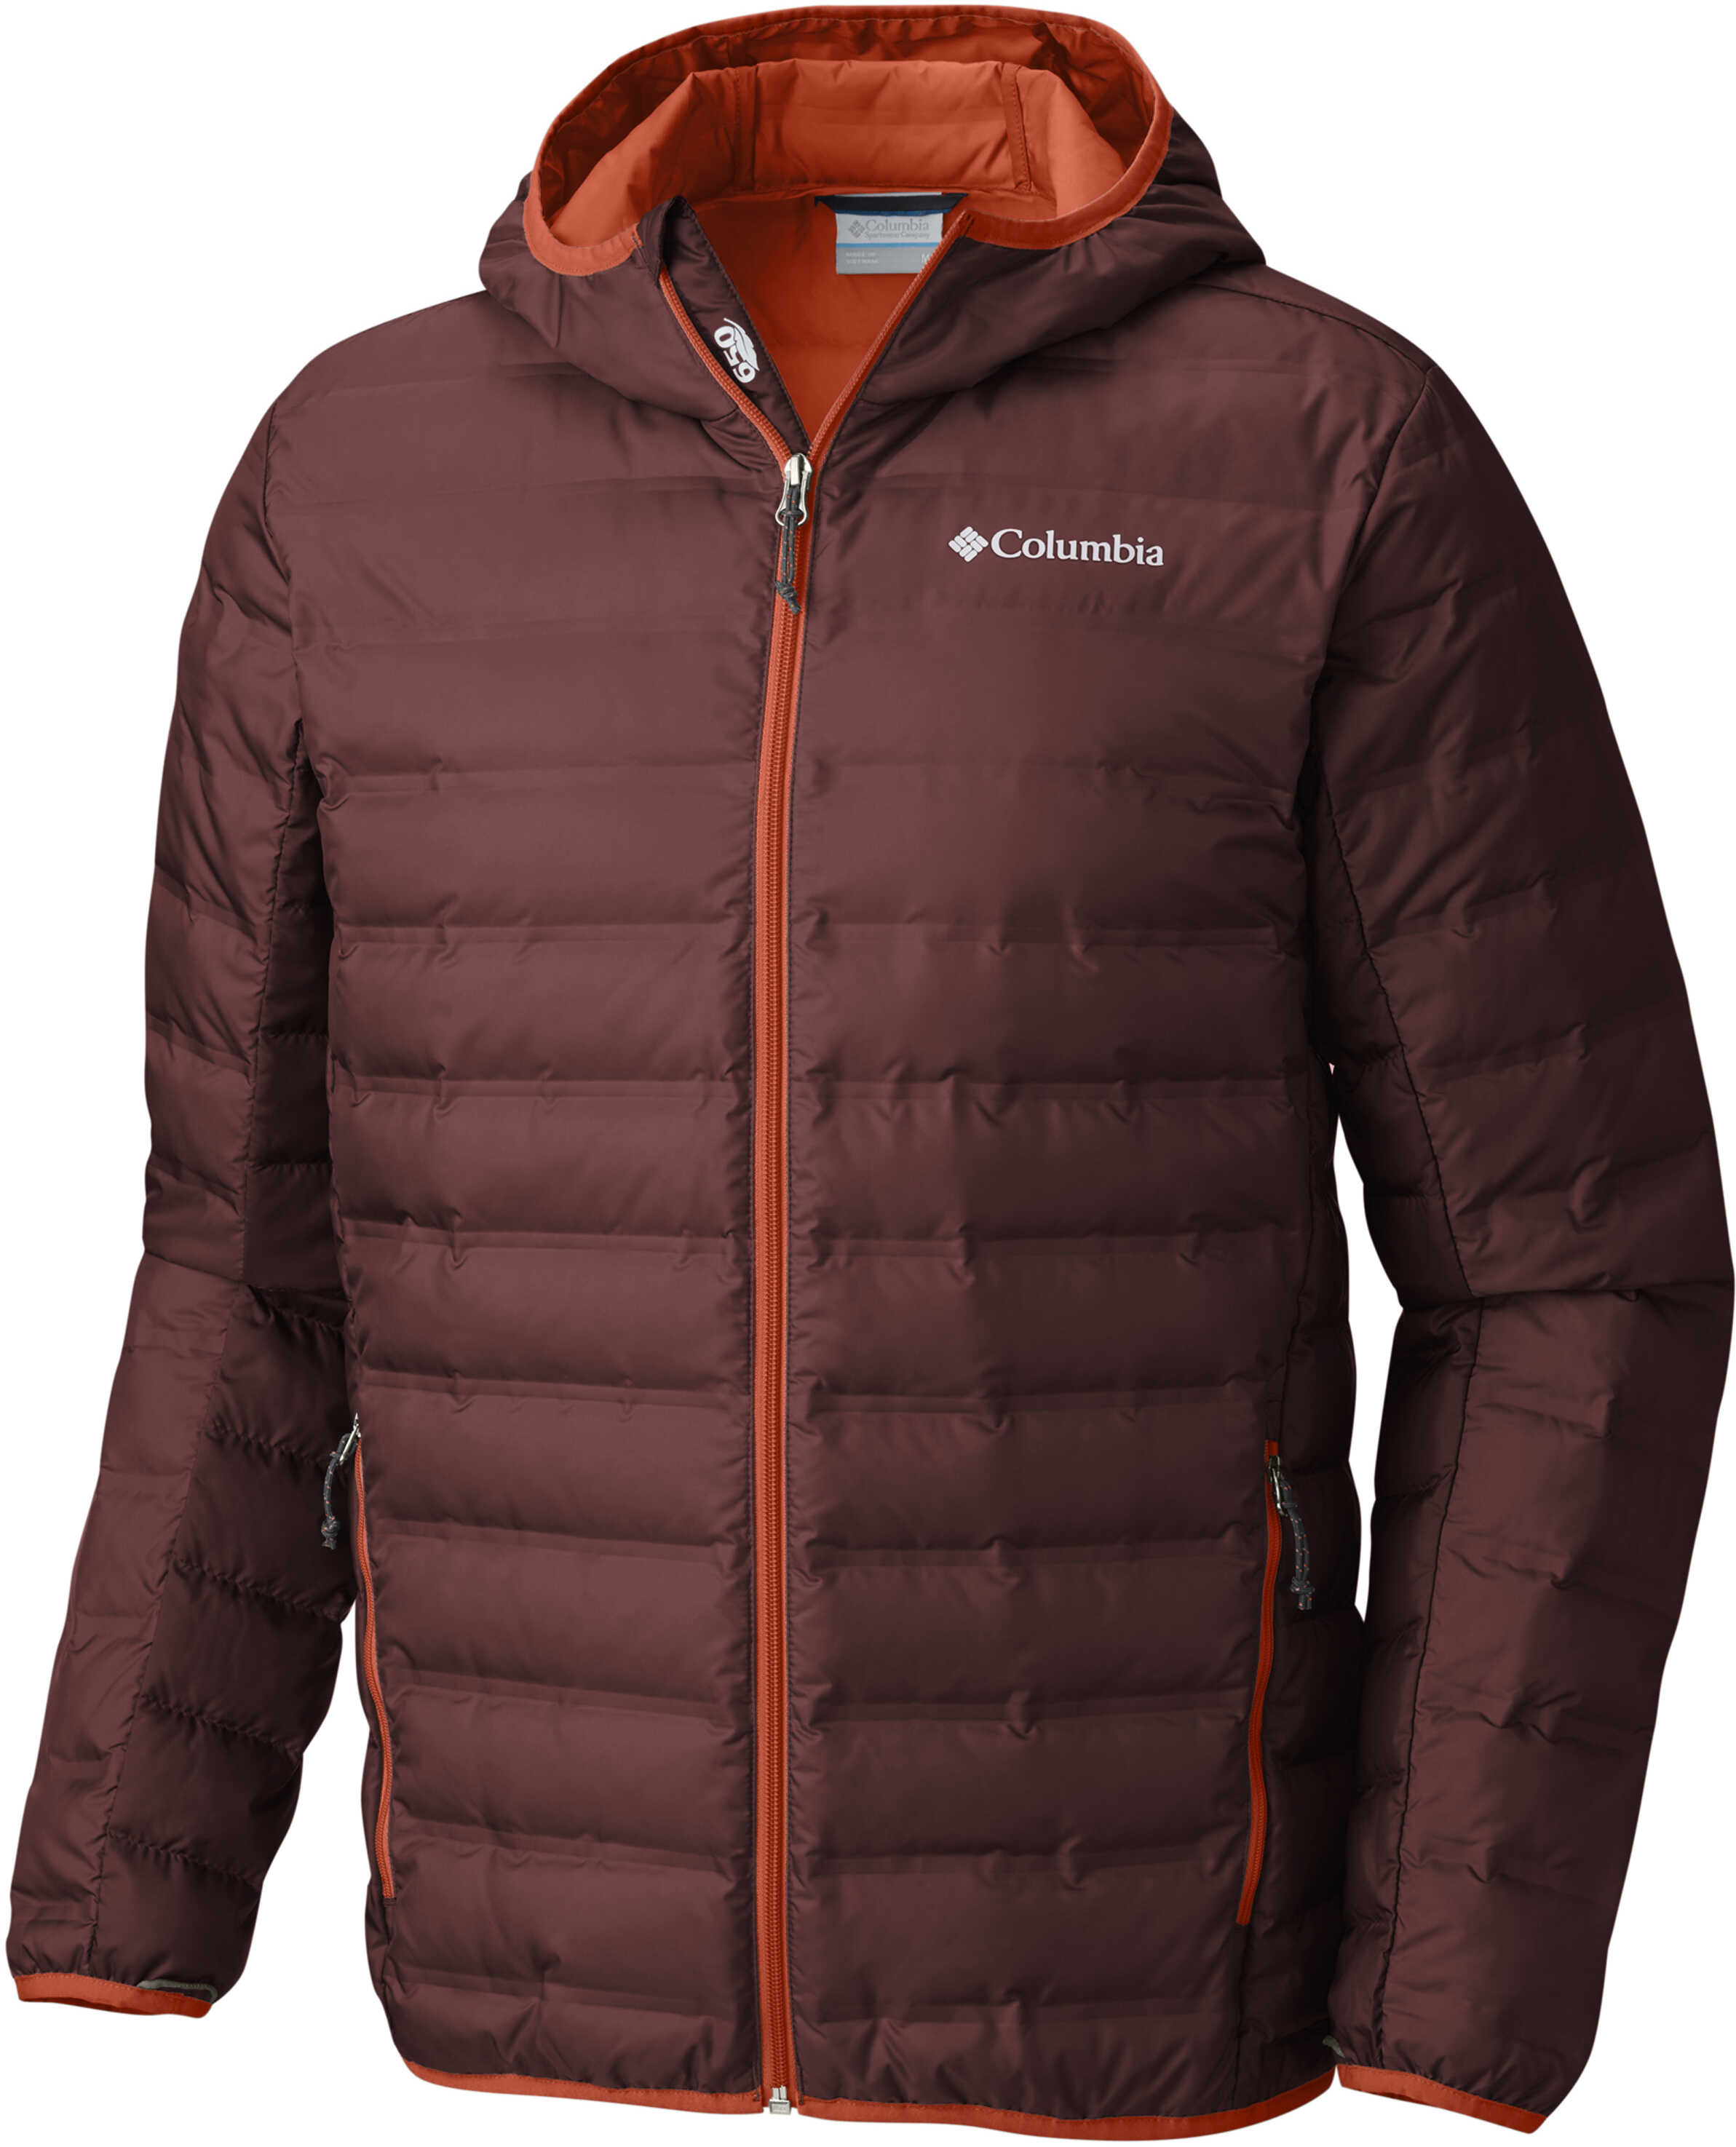 Columbia Lake 22 Down Hooded Jacket-Deep Rust/Hot Pepper Deep Rust/Hot Pepper